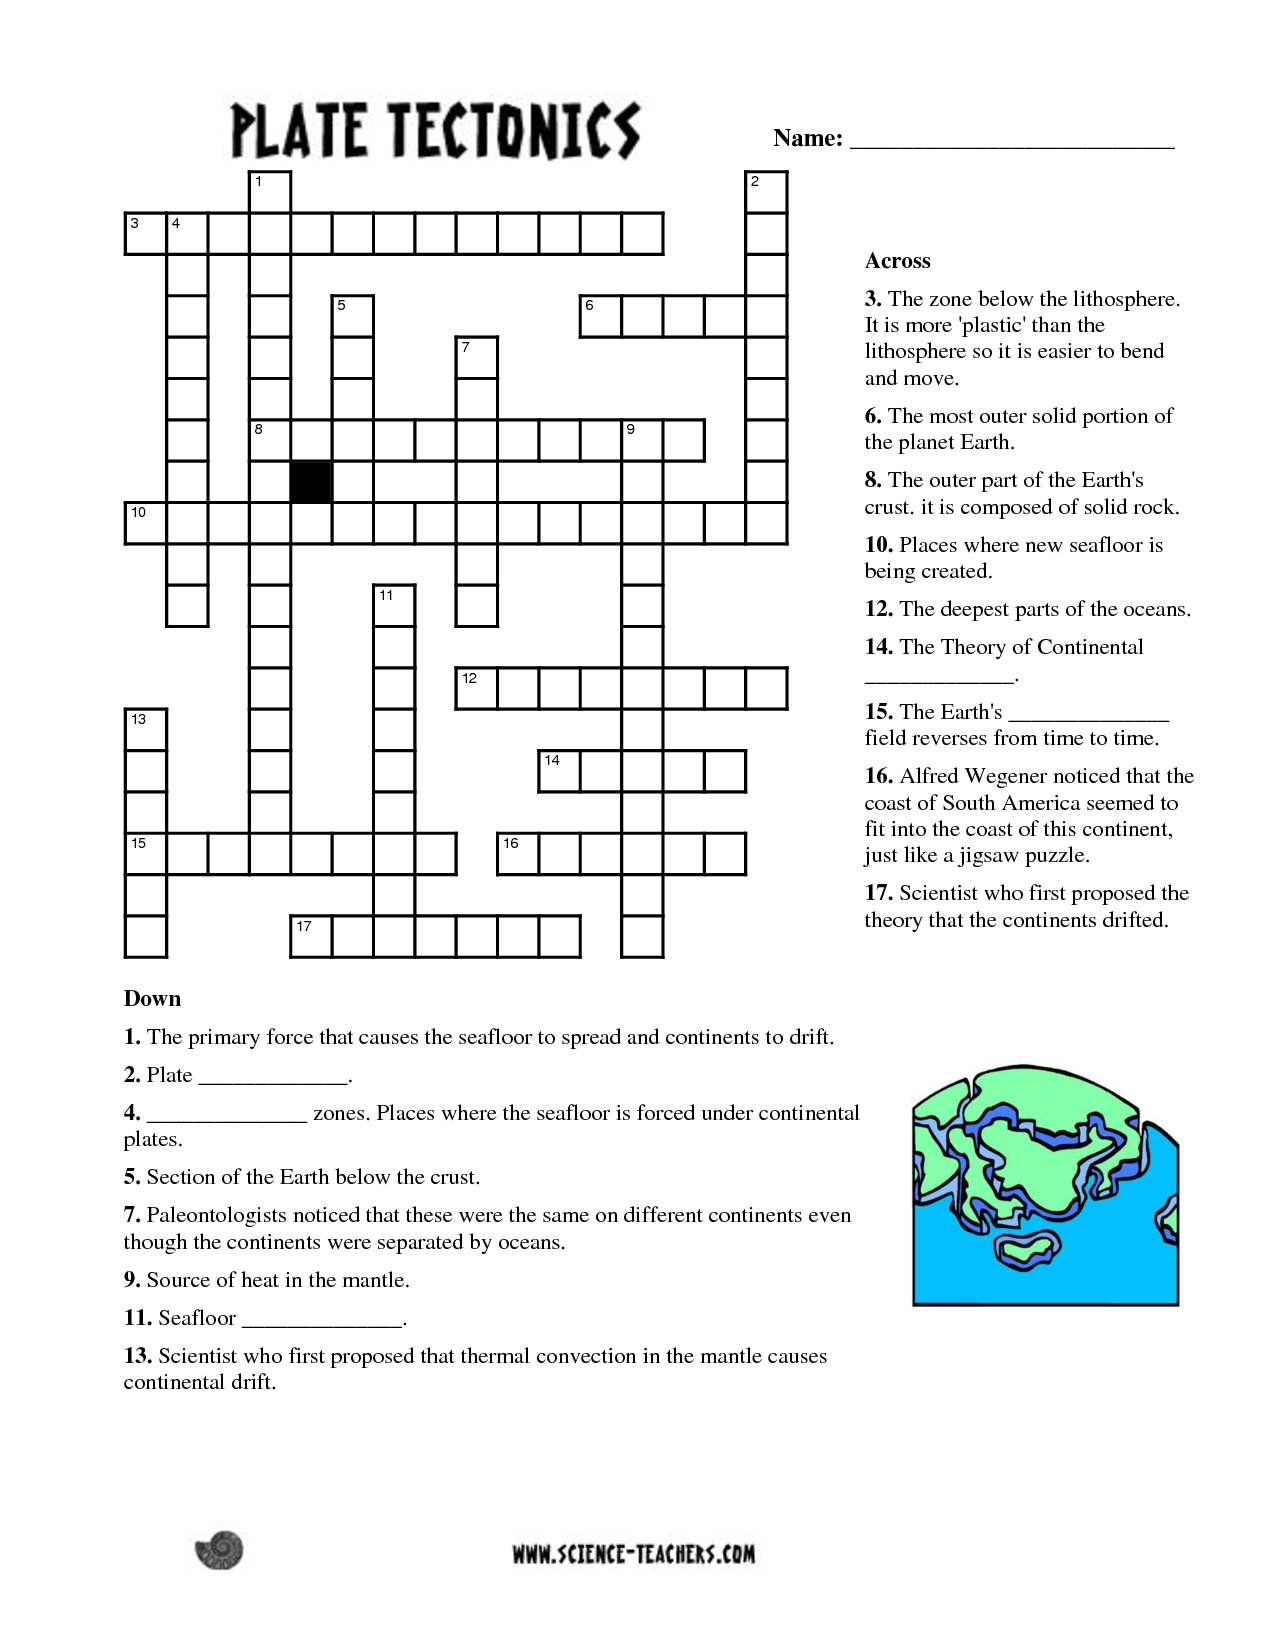 Planets Crossword Puzzle Worksheet   Printable crossword puzzles [ 1650 x 1275 Pixel ]